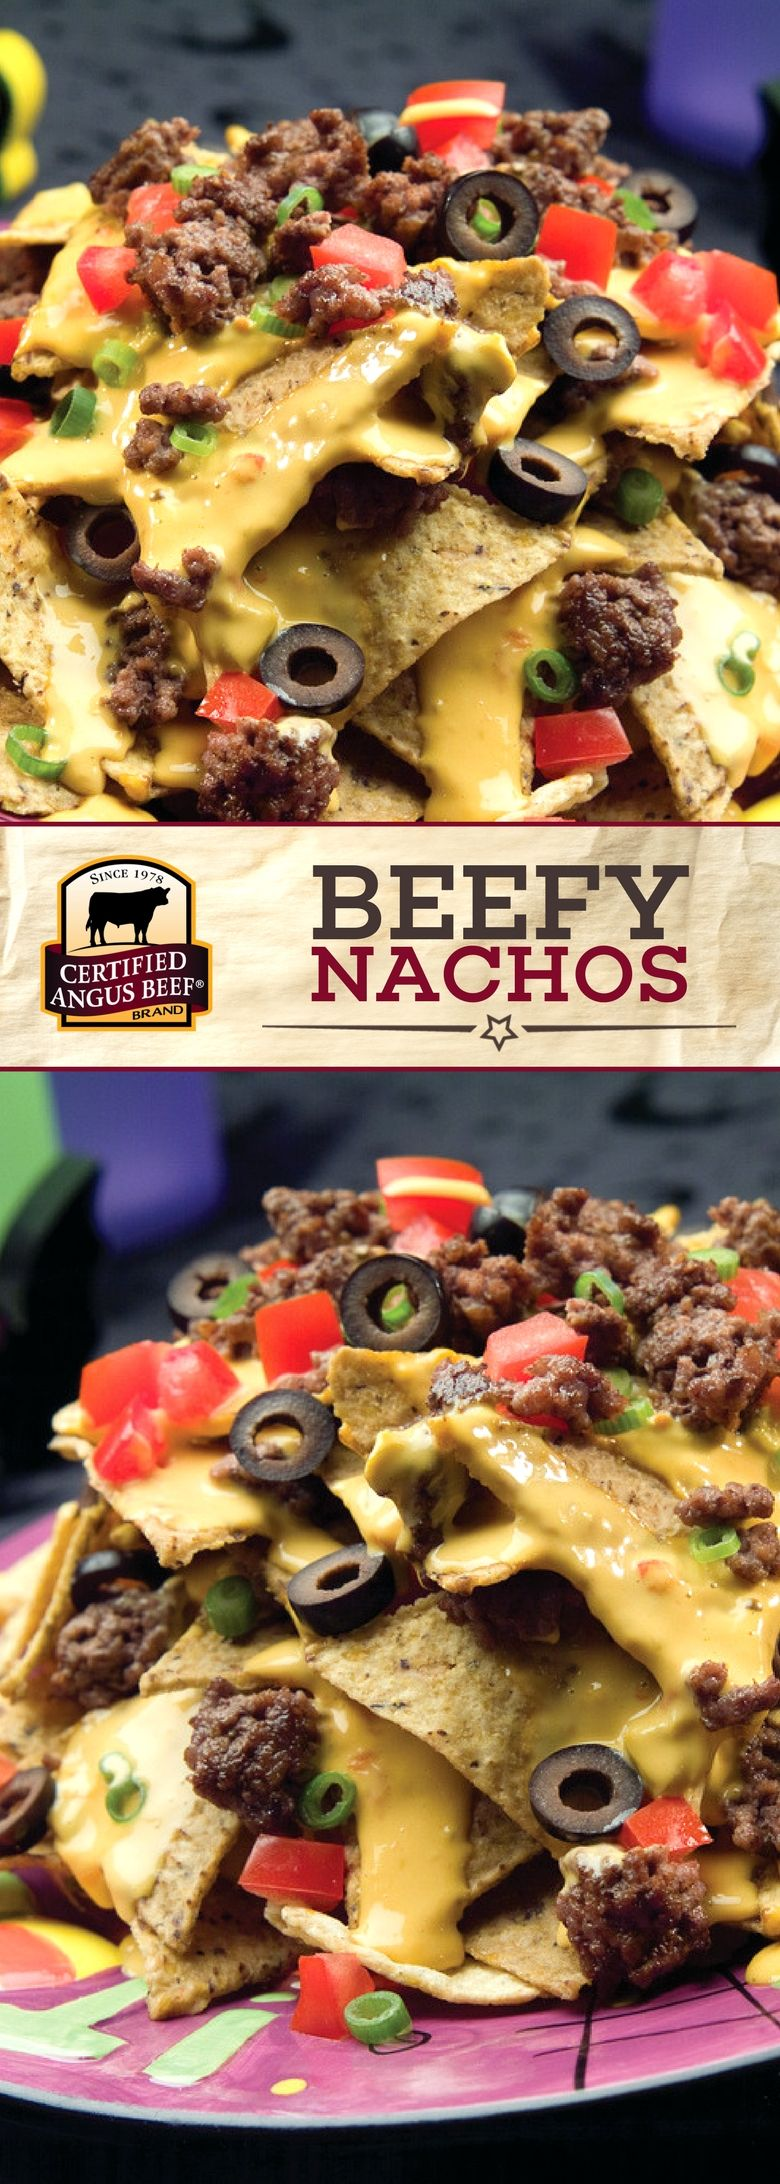 Certified Angus Beef Brand Beefy Nachos Are Deliciously Simple And Easy To Make The Best Ground C Nachos Recipe Beef Nachos Recipe Easy Certified Angus Beef